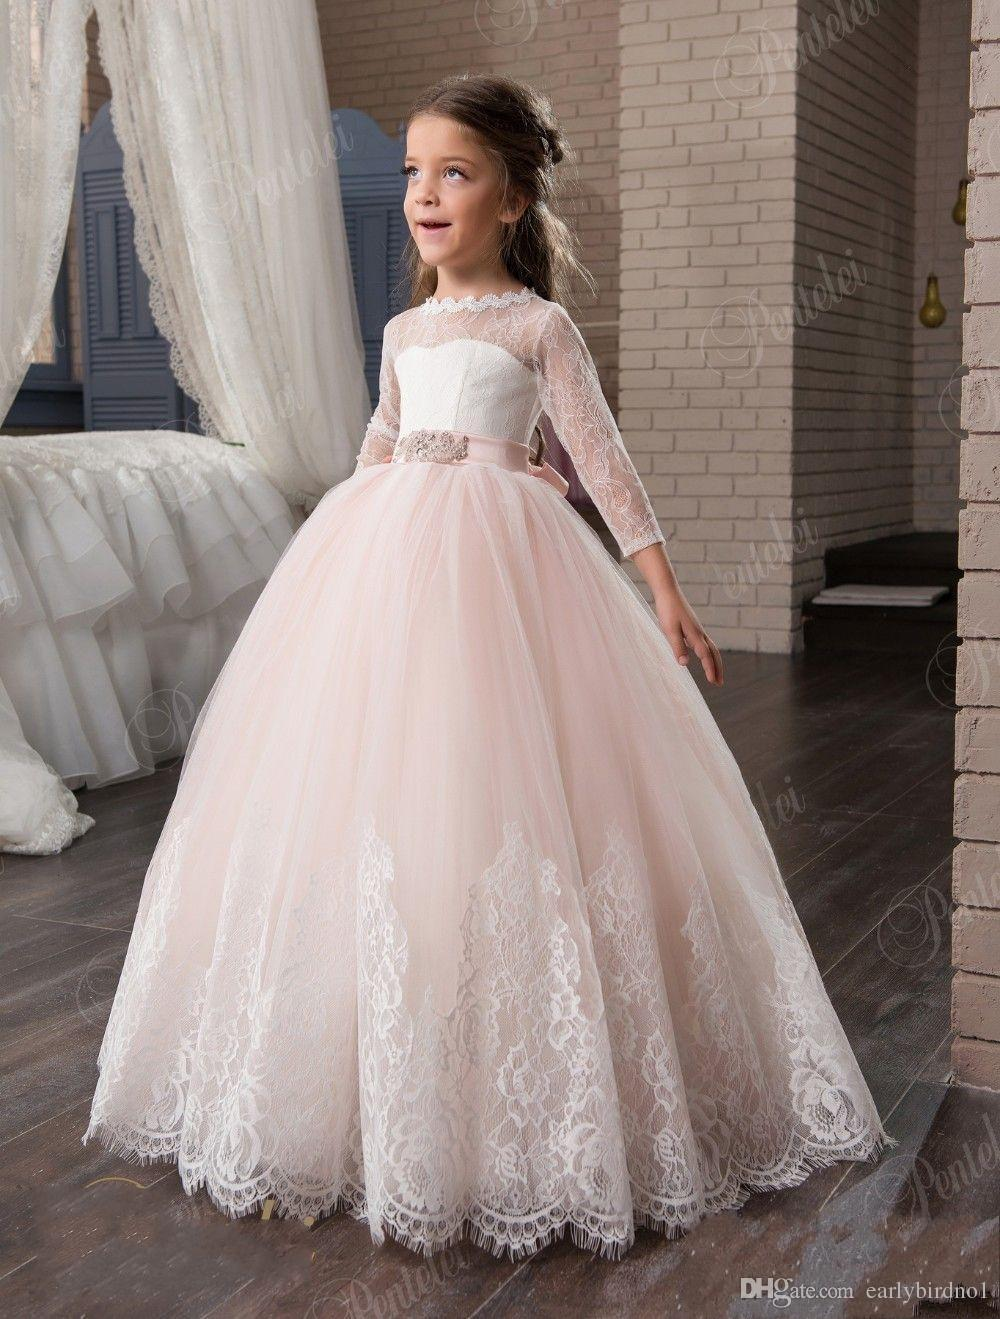 Cute pink flower girl dresses 34 long sleeves lace appliques cute pink flower girl dresses 34 long sleeves lace appliques princess ball gown pageant girl dresses birthday party gown 2017 new two pieces prom gowns dhlflorist Gallery